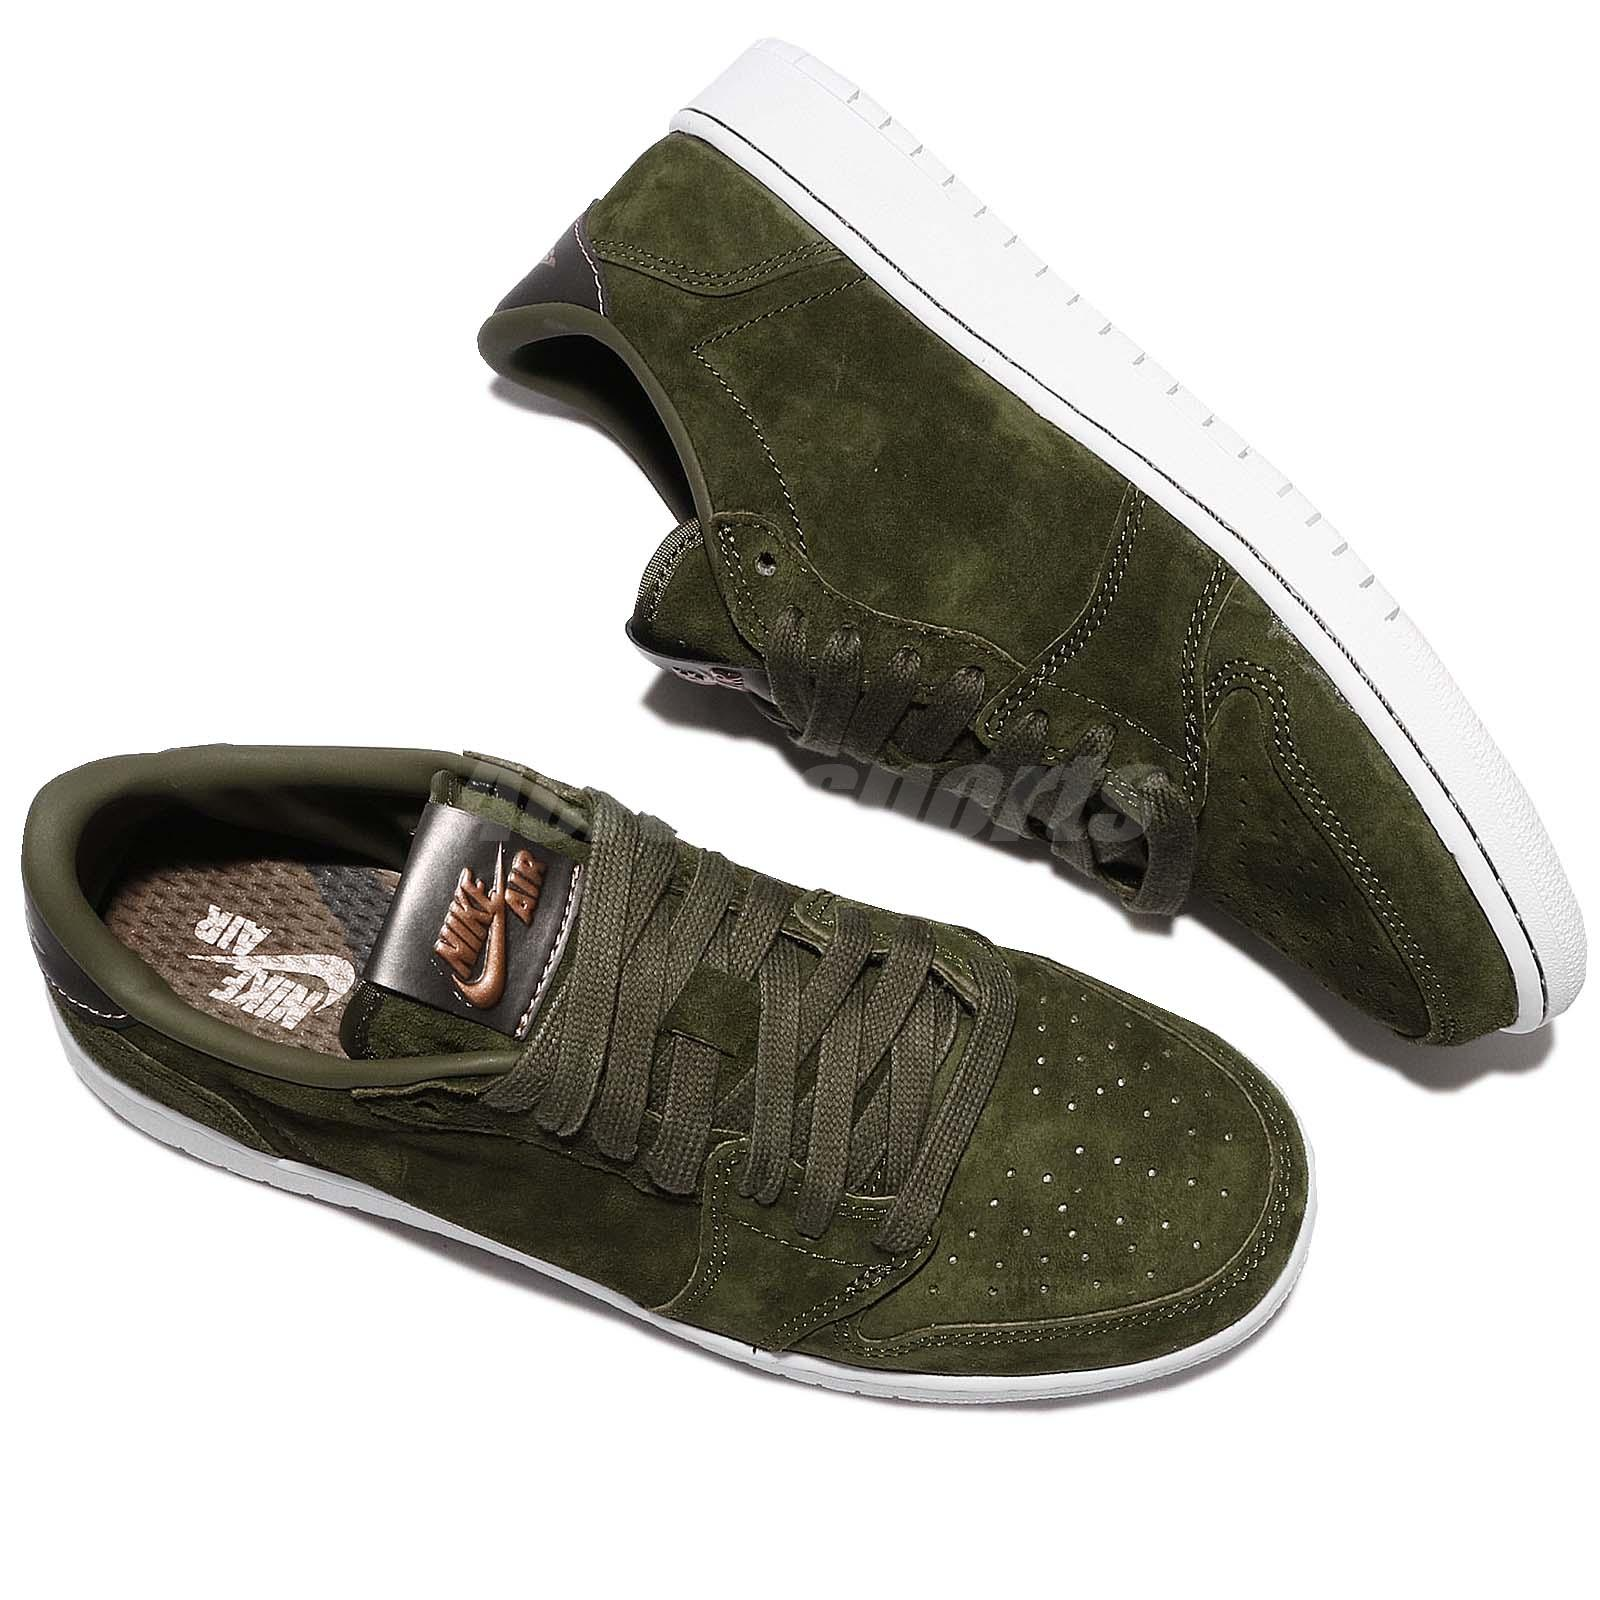 Clothing, Shoes & Accessories Nike Air Jordan 1 Retro Low Ns Hc Heiress Collection Legion Green Kid 919705-330 Women's Shoes